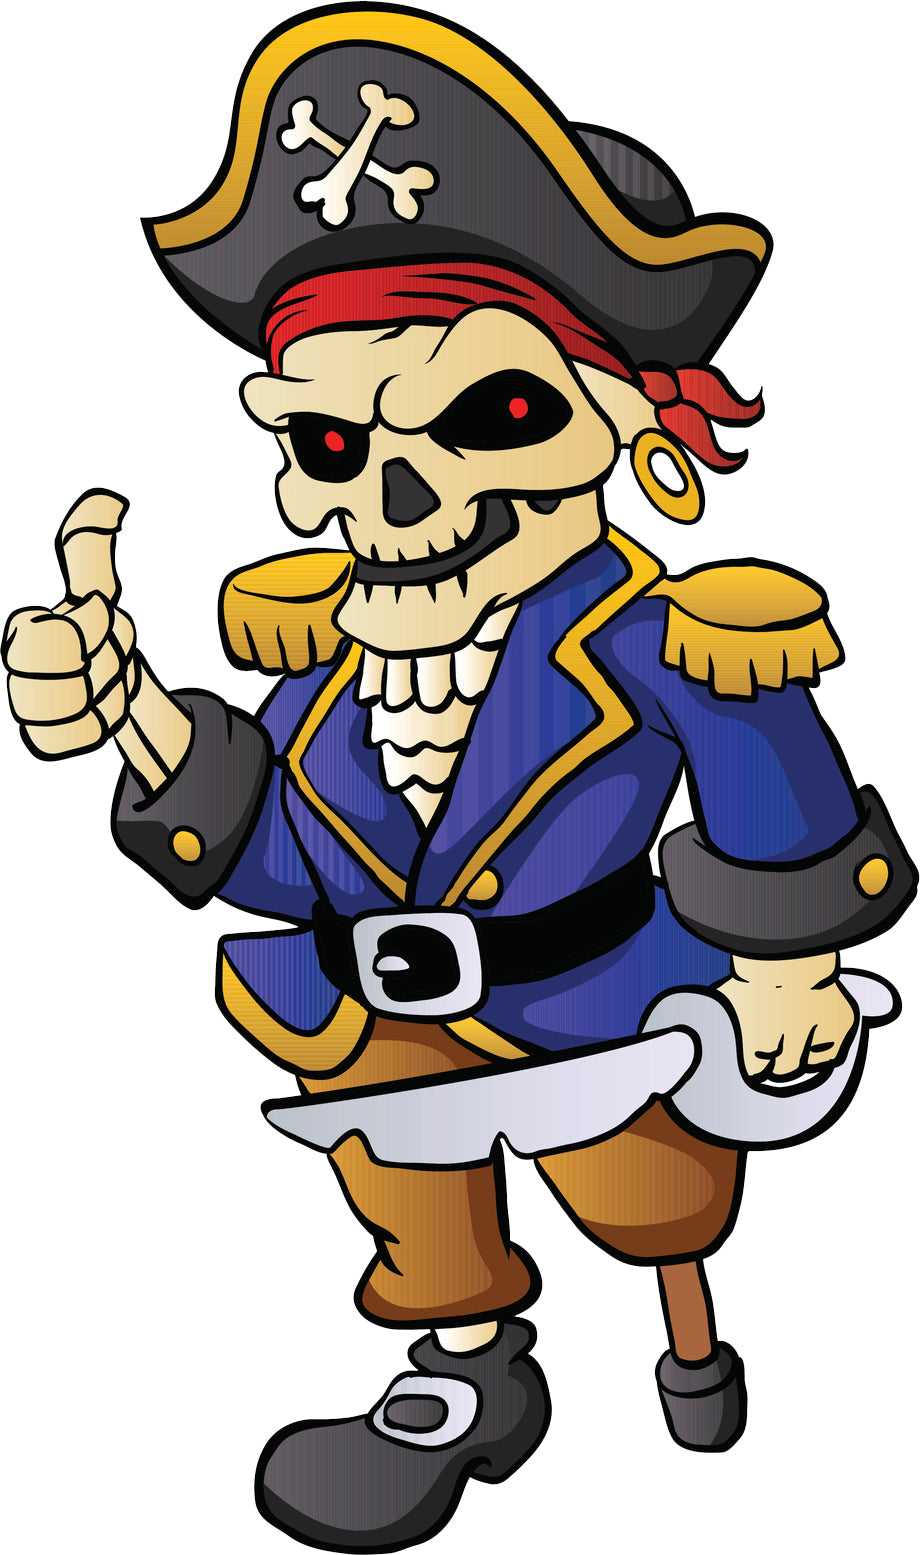 Cool Vintage Retro Cartoon Pirate - Skeleton Vinyl Decal Sticker